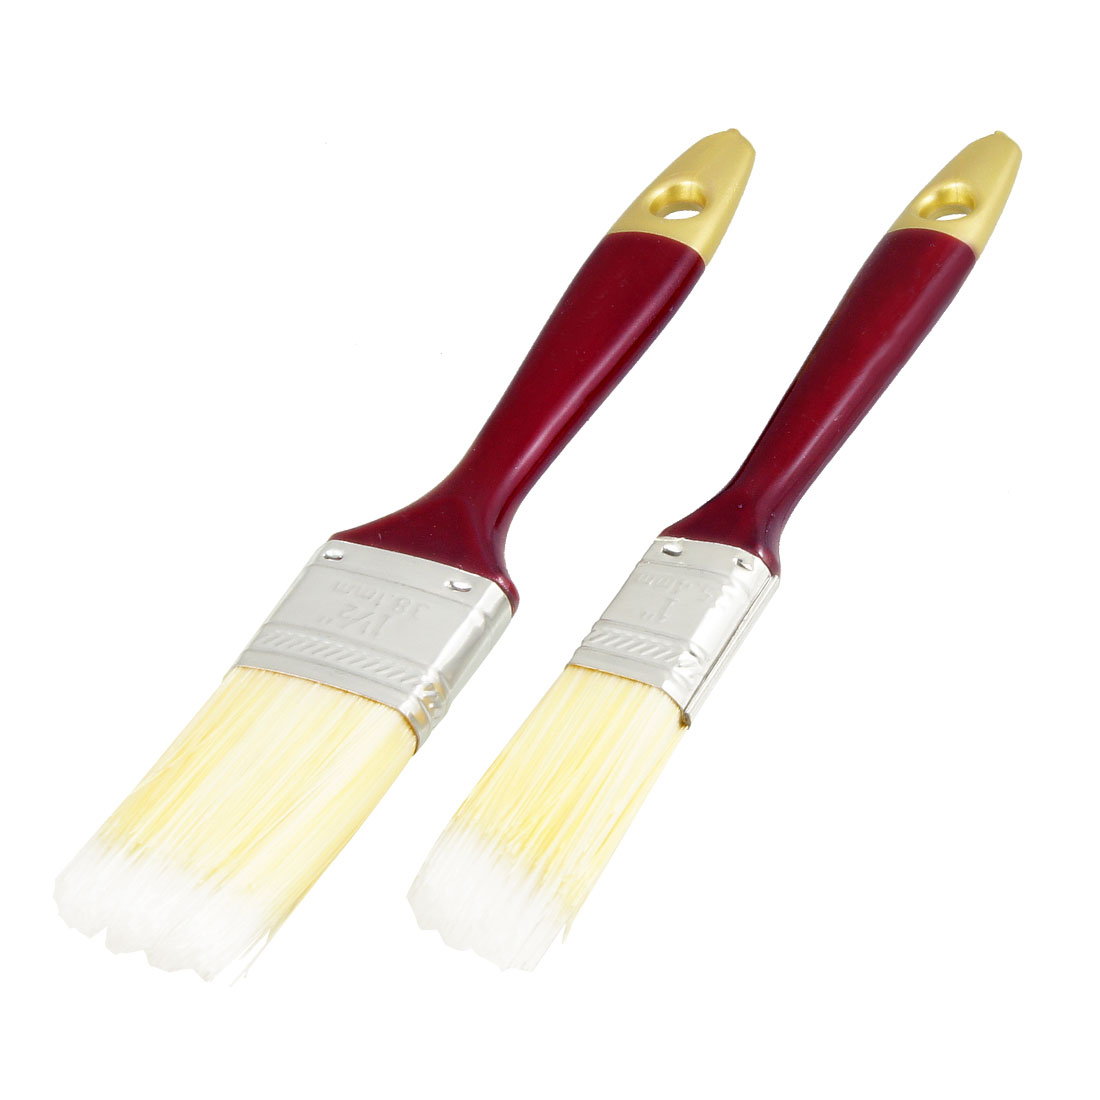 2 Pcs Flat Faux Fur Hair Dark Red Wood Long Handle Oil Painting Brush